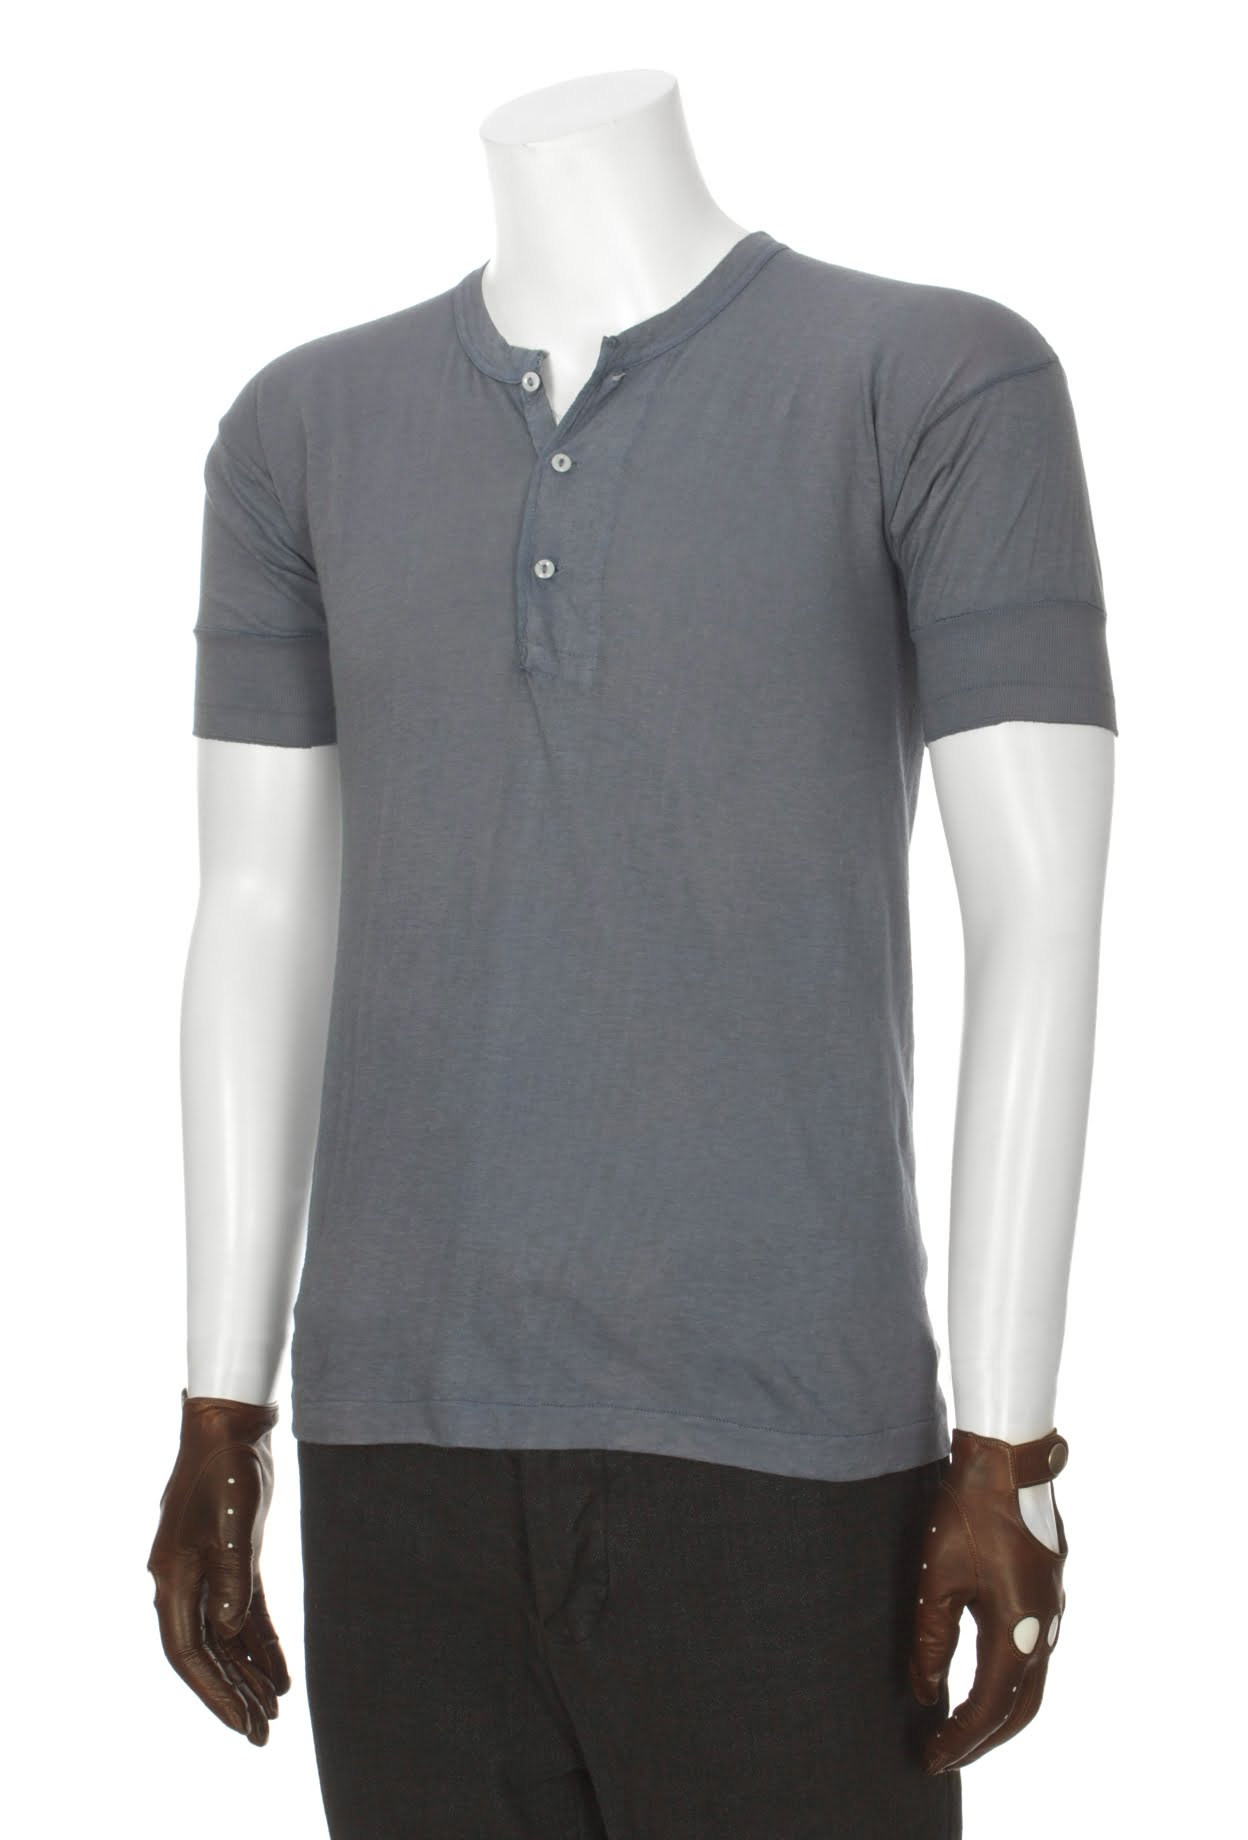 what henley shirt was ryan gosling wearing in his new film